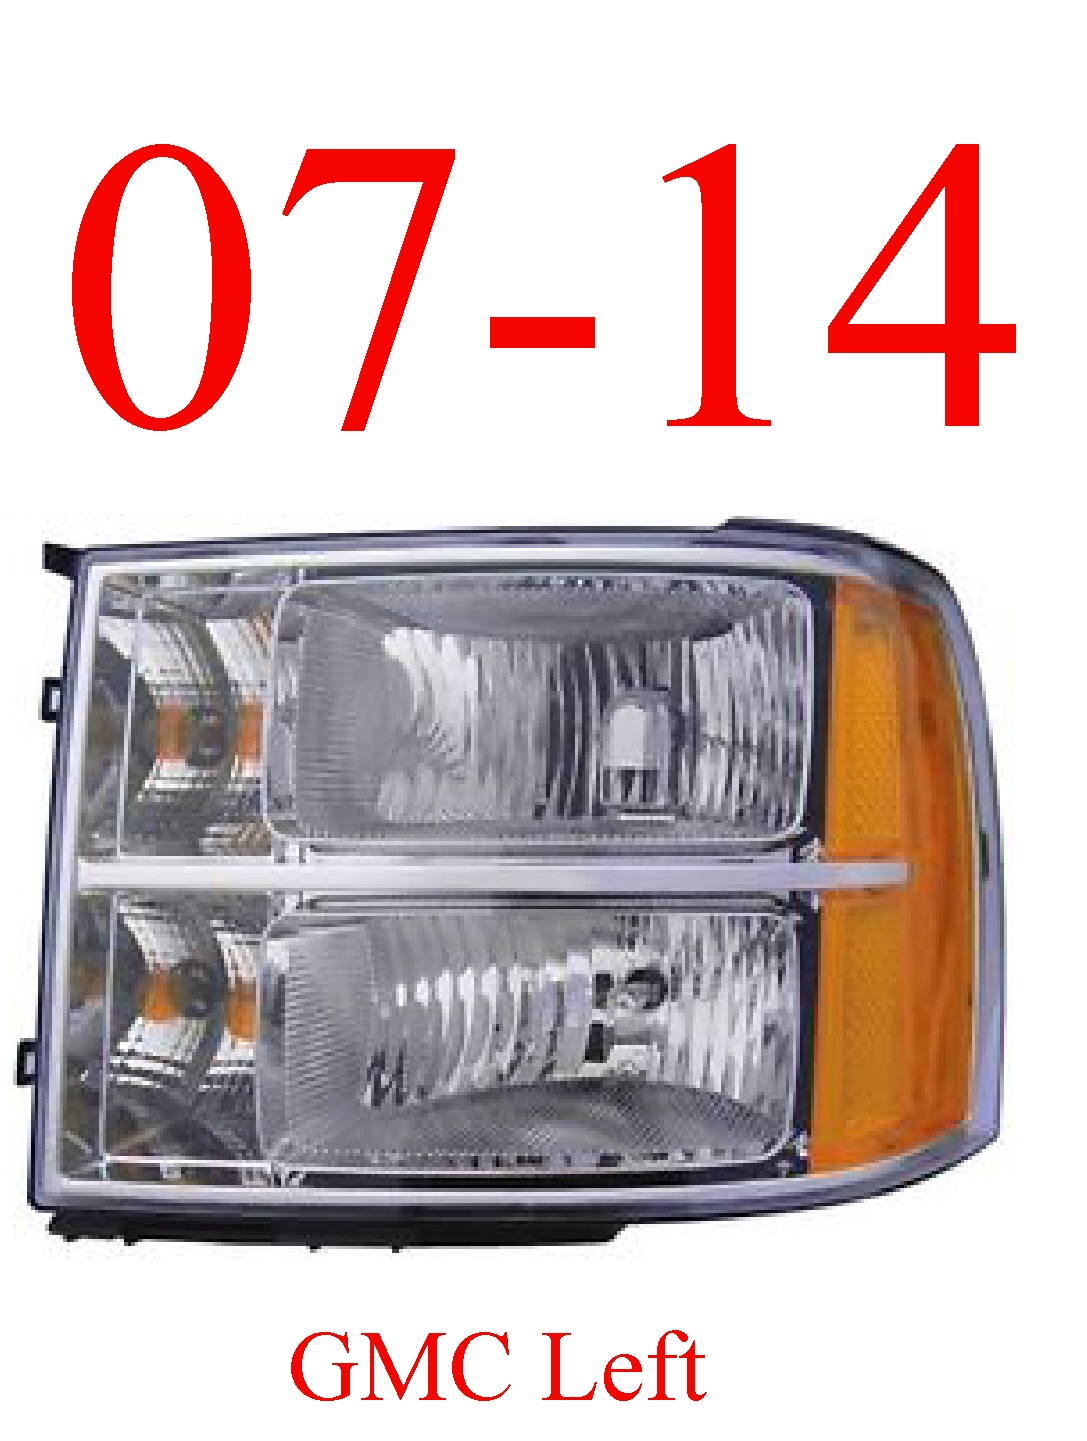 07-13 GMC Left Head Light Assembly